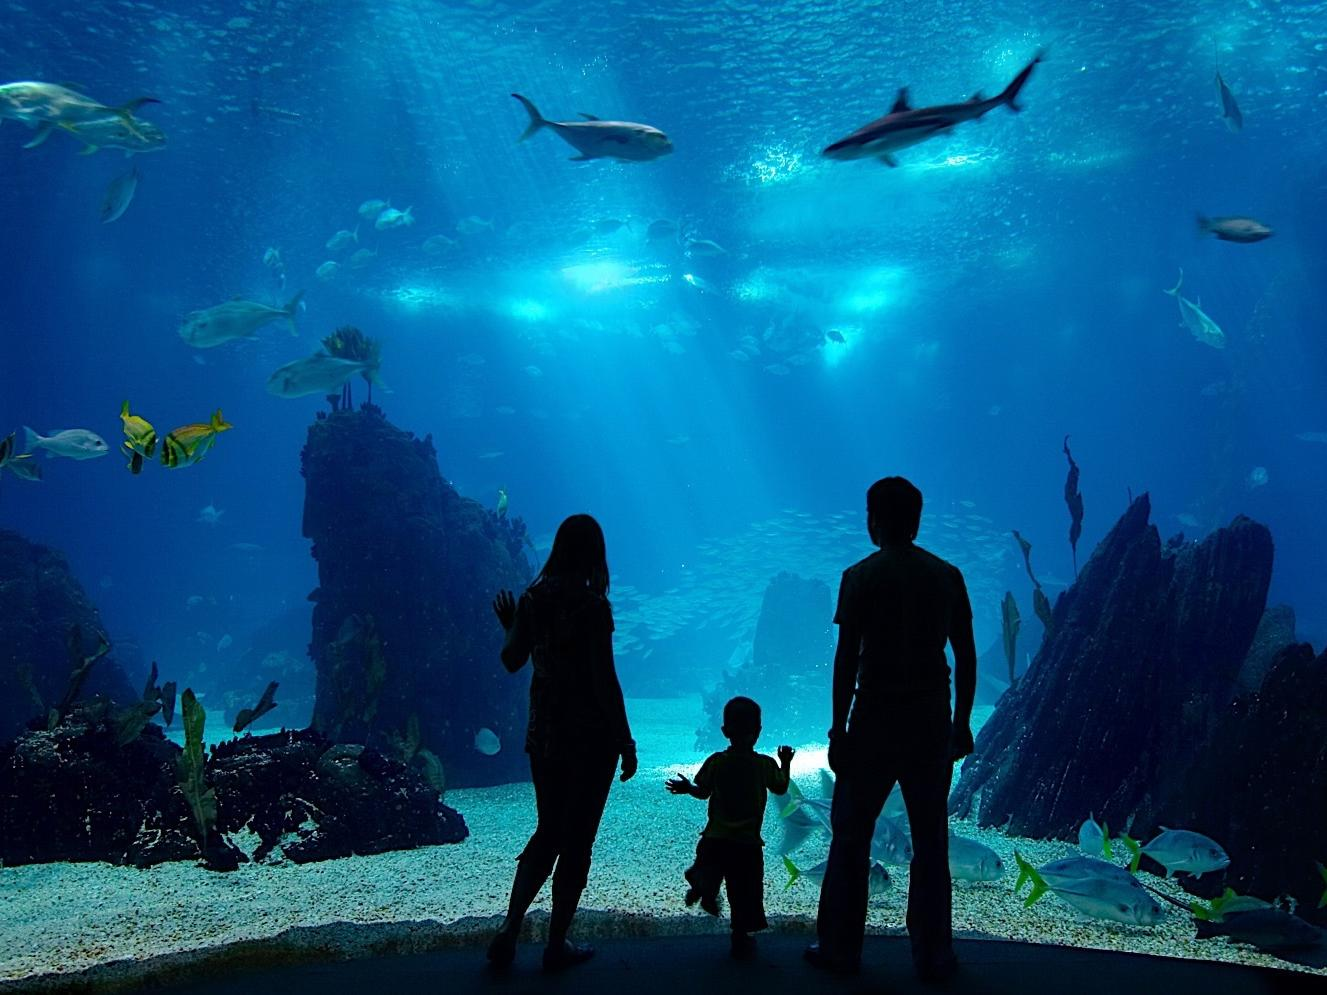 A mother, father, and son staring into an aquarium tank